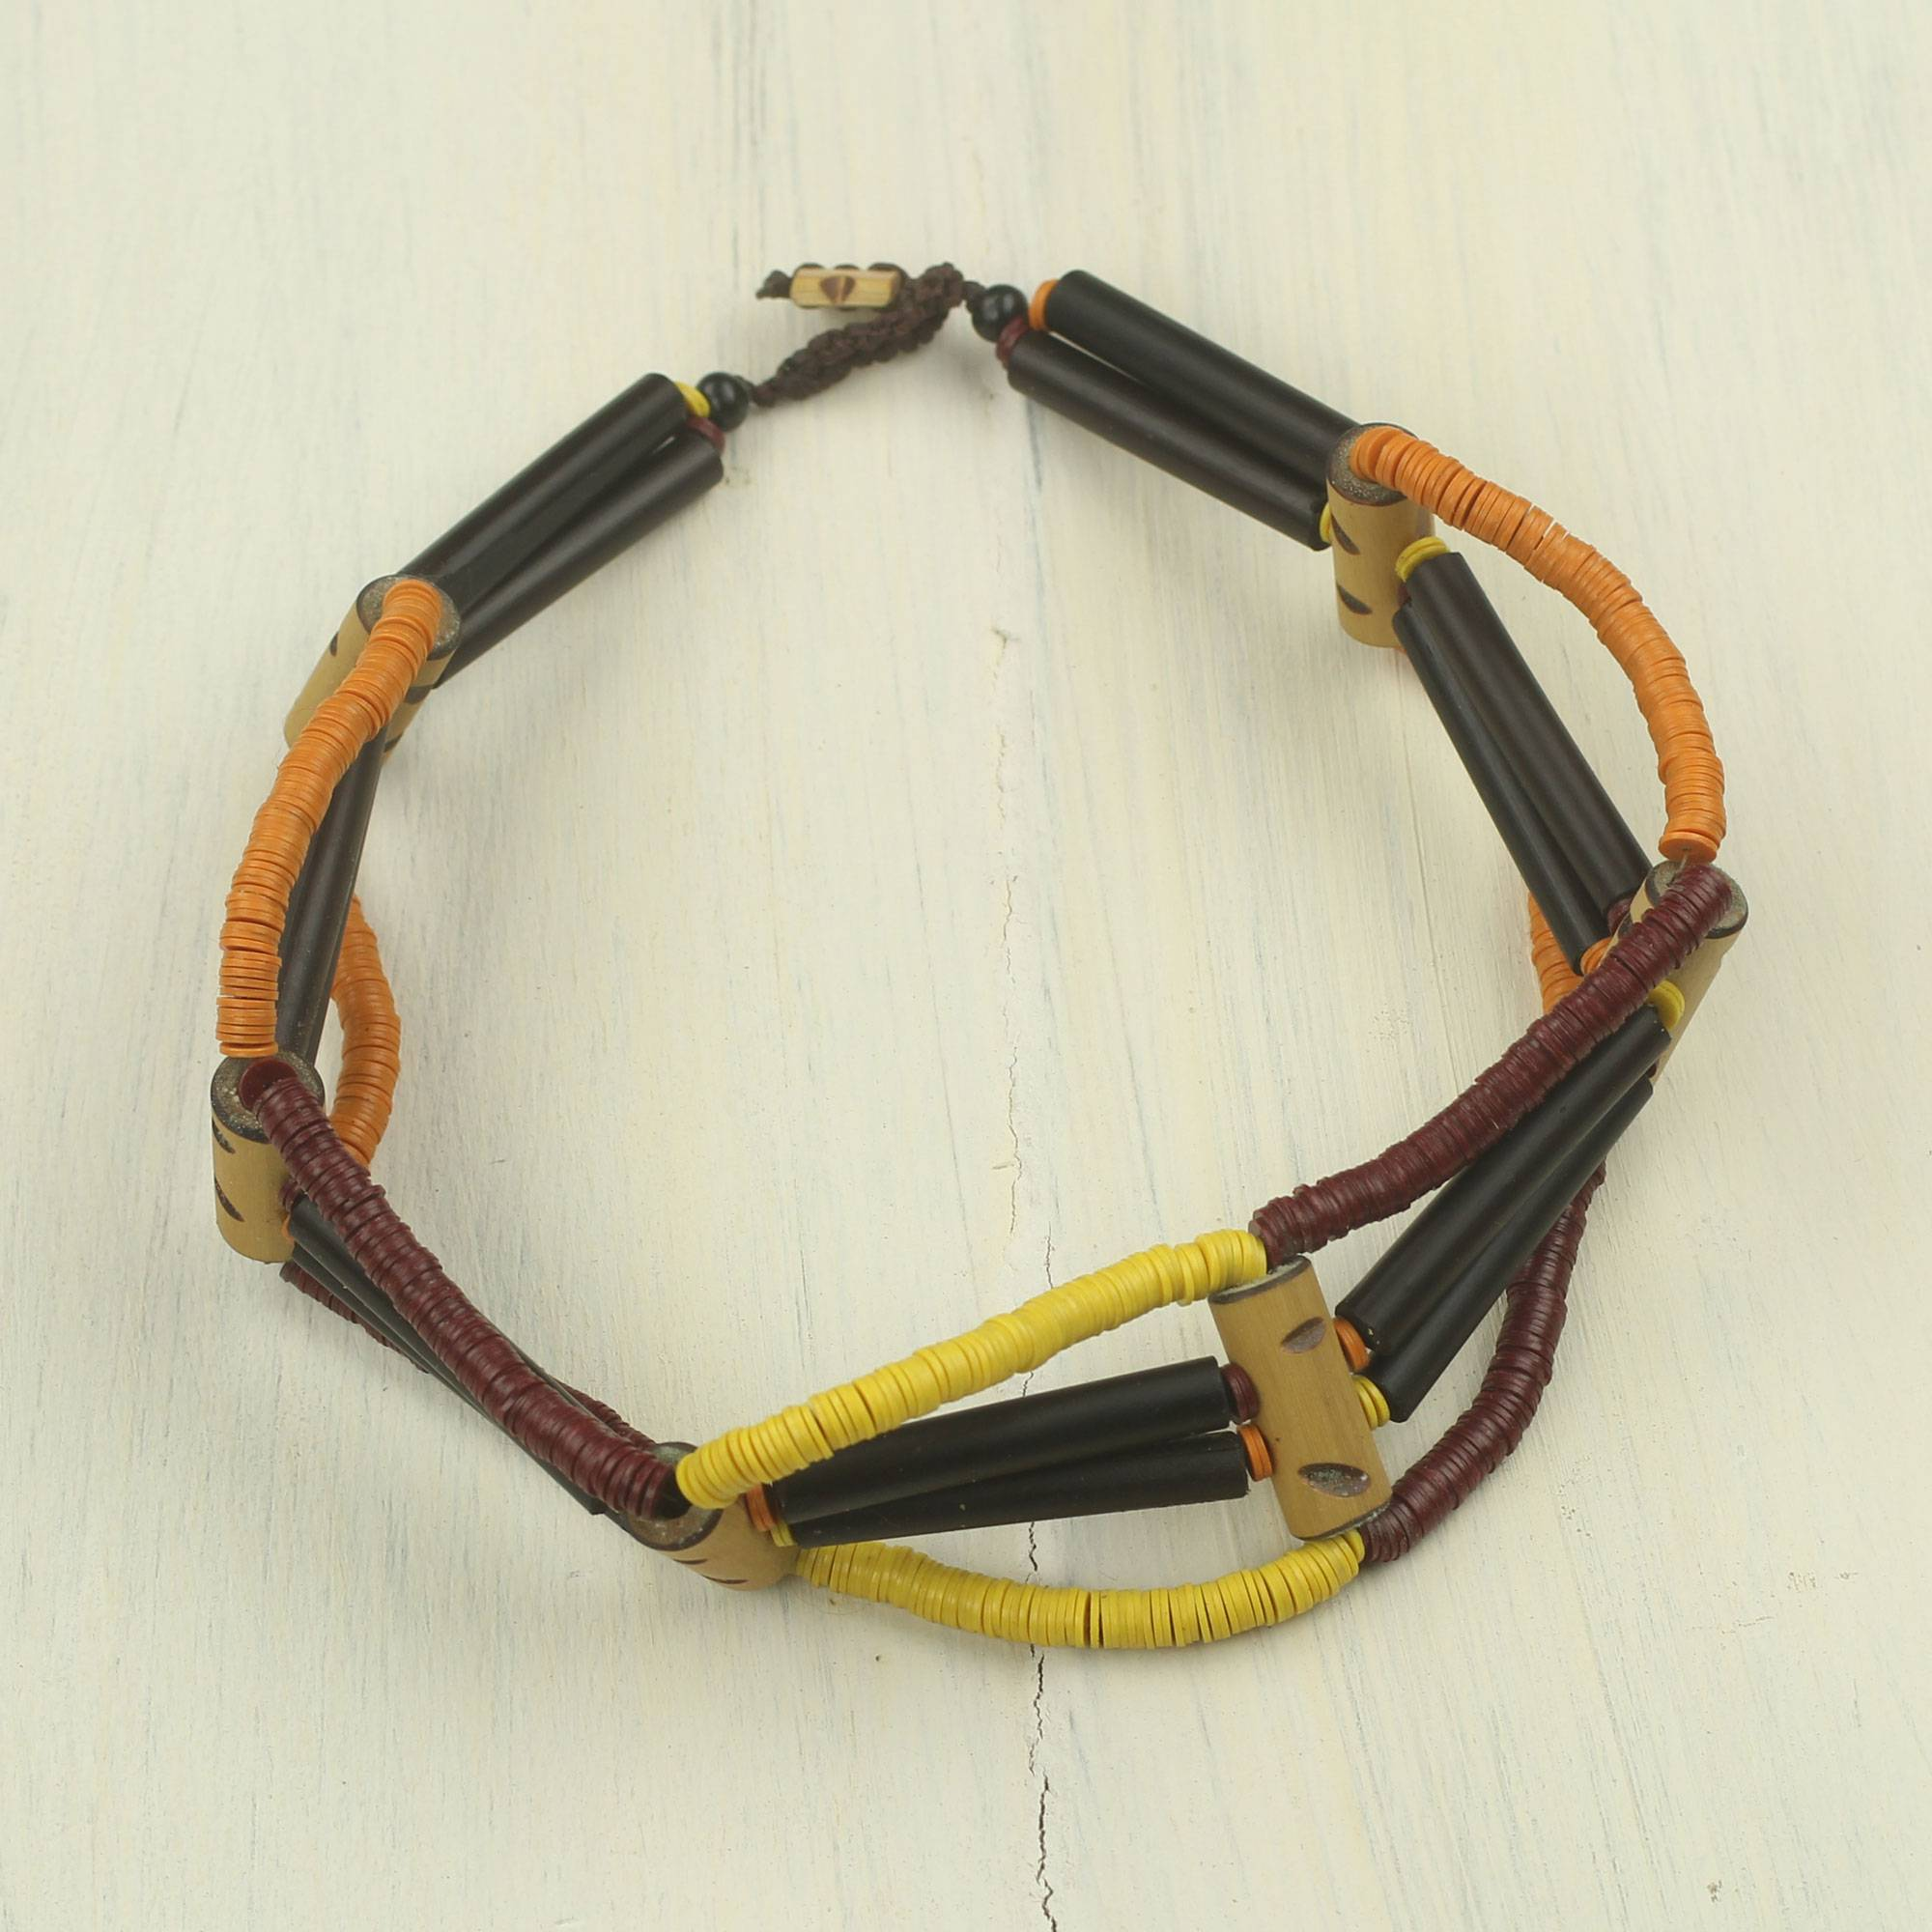 Lagos Loops Handcrafted Women's Choker Necklace from Africa The Perfect Necklace